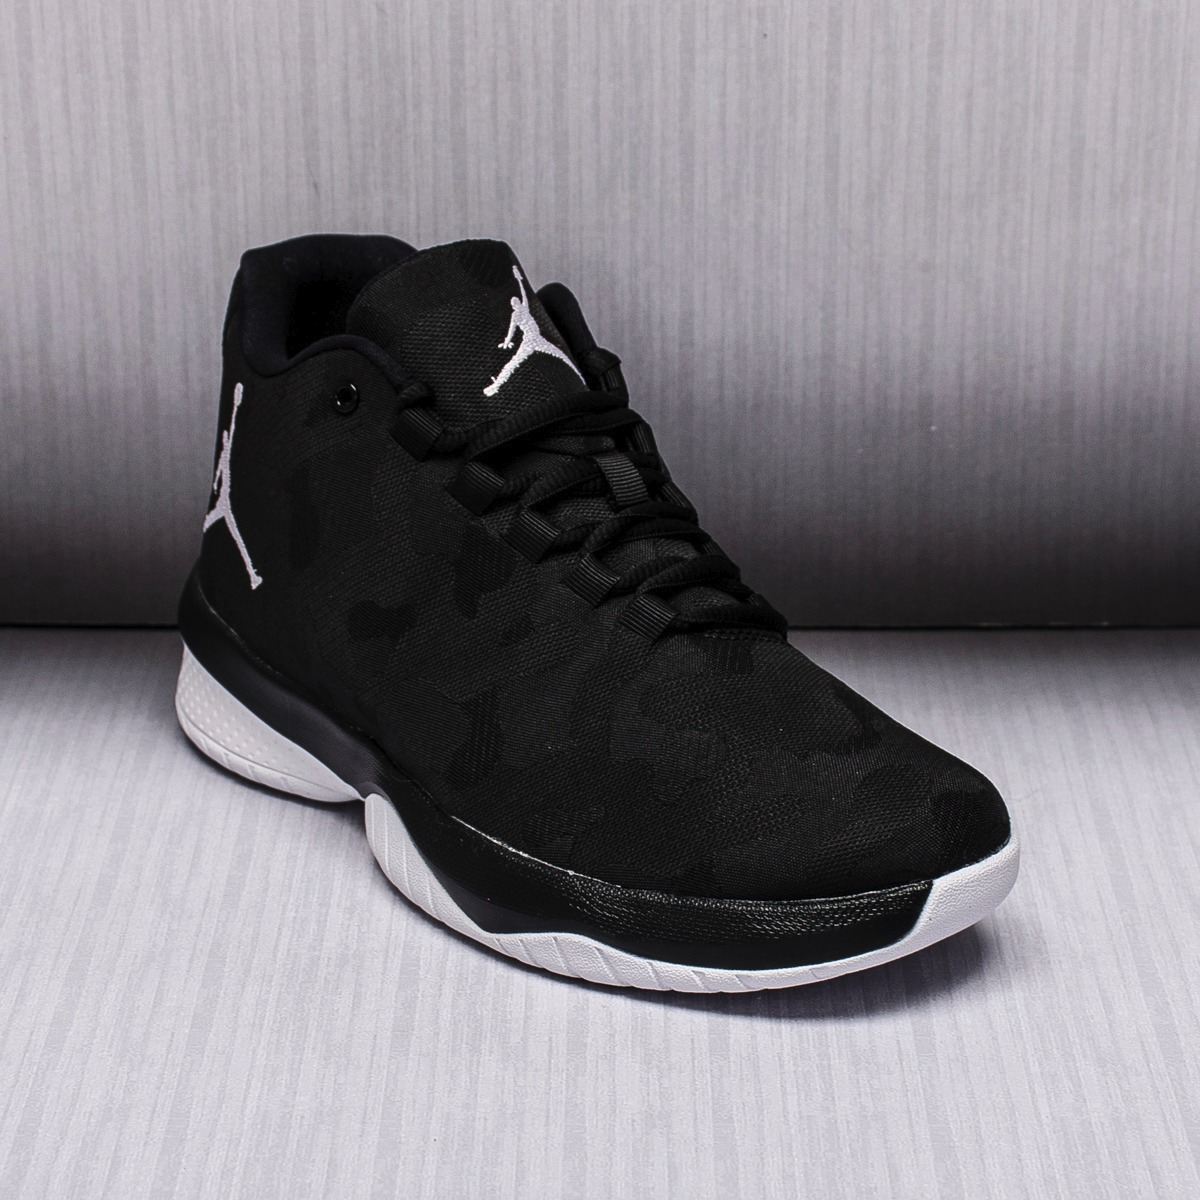 31b73fe99176 zapatillas nike jordan b fly basquet basket black. Cargando zoom.